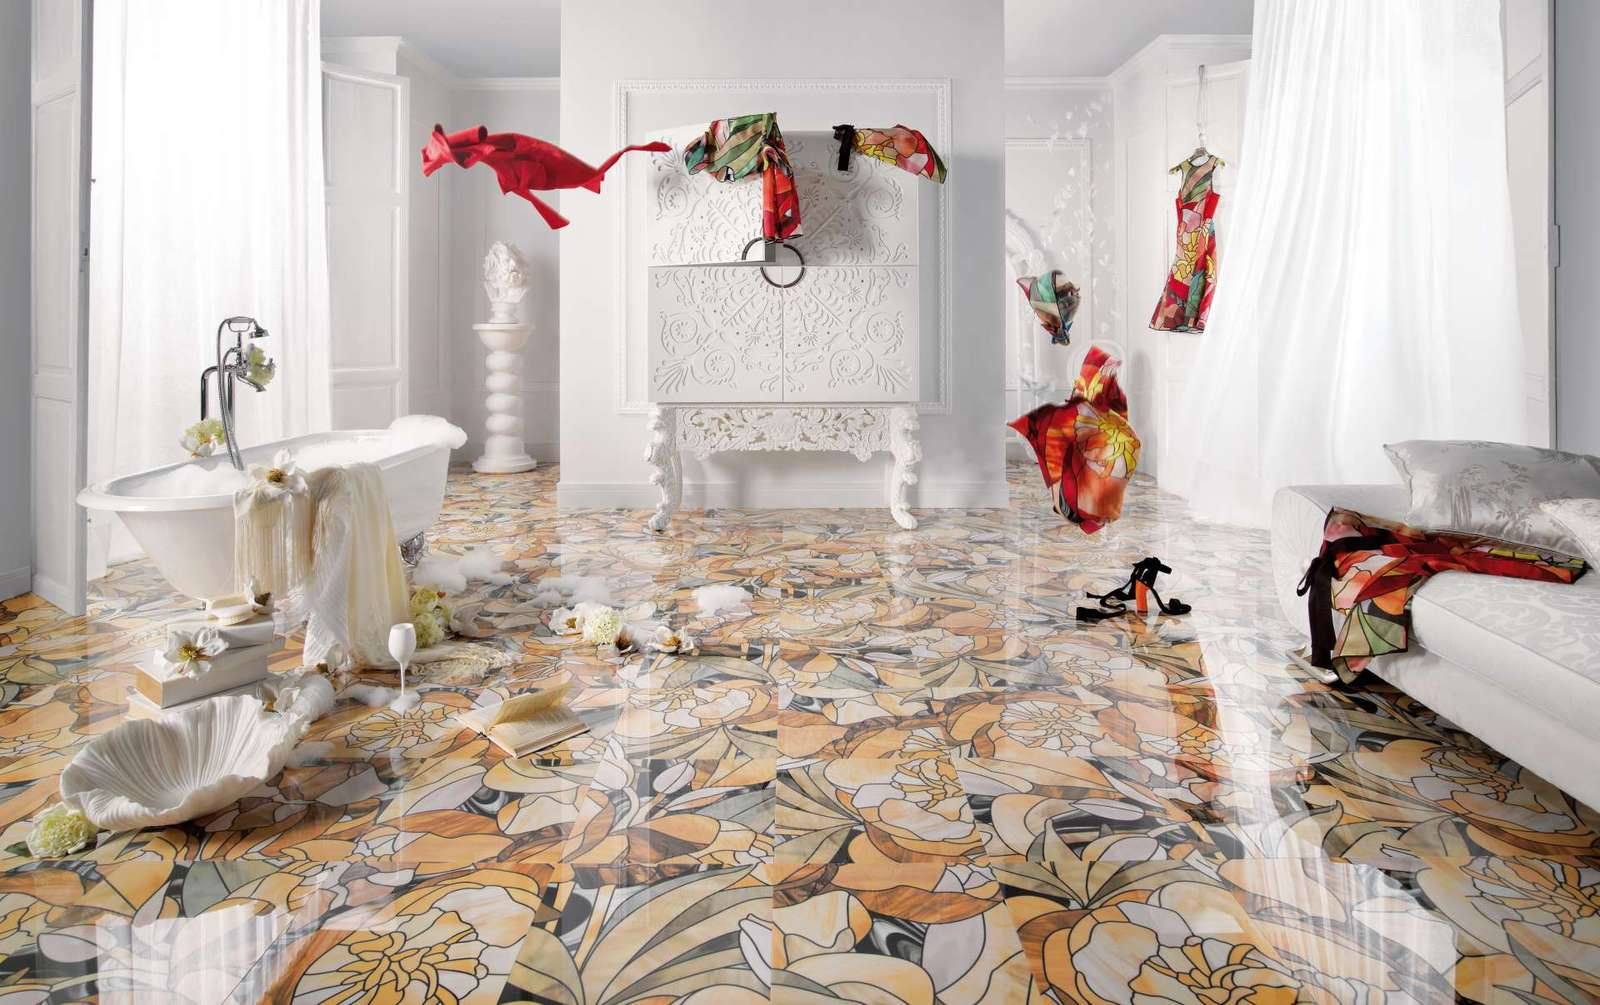 beautiful tile flooring ideas for living room kitchen bathroom designs kitchen tile flooring 25 Beautiful Tile Flooring Ideas for Living Room Kitchen and Bathroom Designs